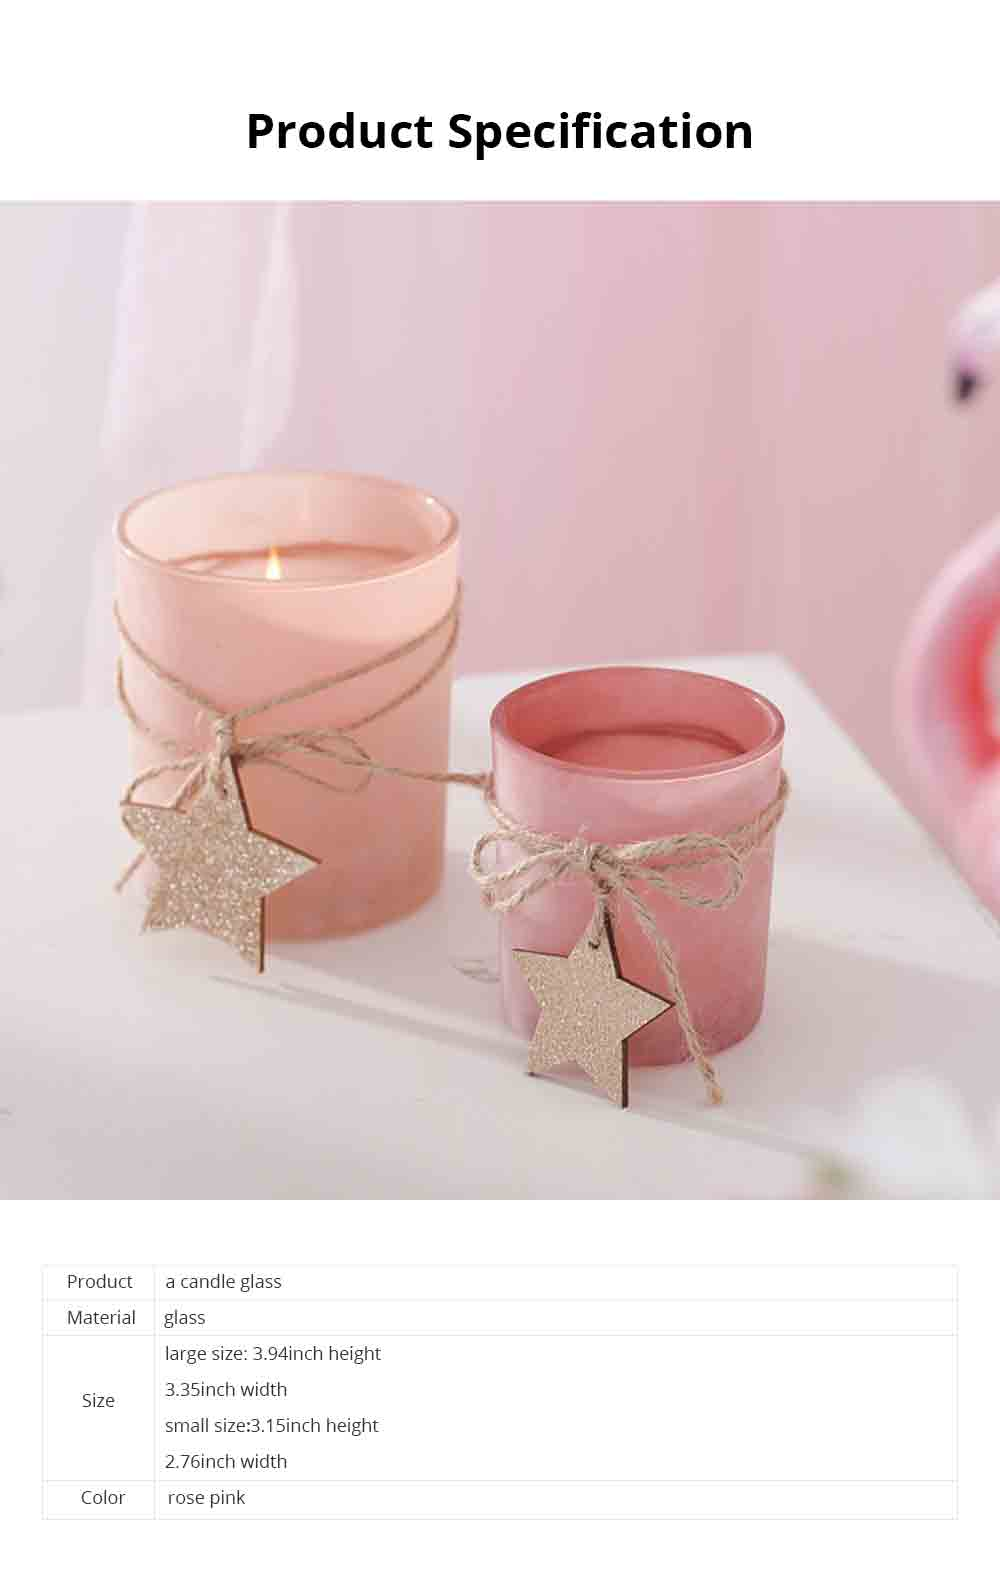 Handmade DIY Romantic Scented Candle Glass Dinner Bedroom Girly Decor Candle Holder Candlelight Props Candle Cup 6